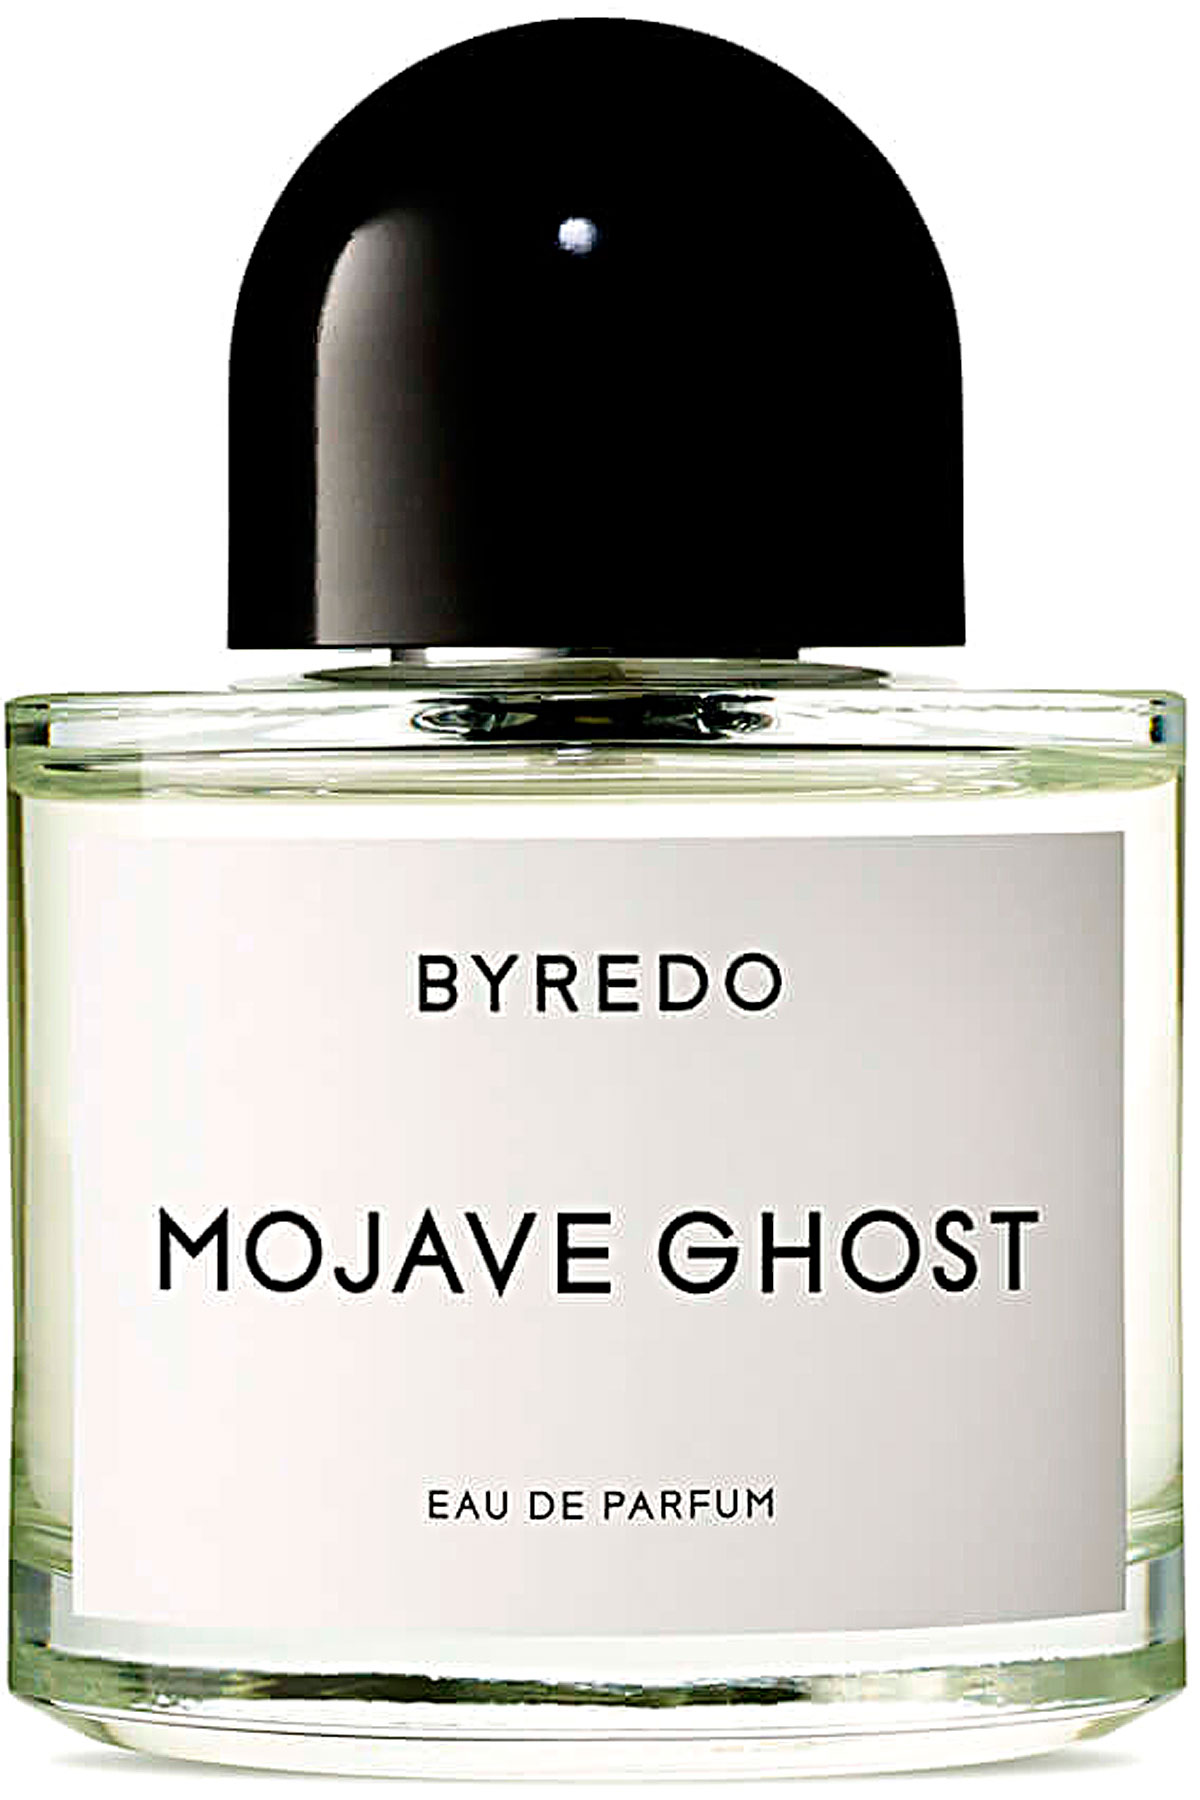 Byredo Fragrances for Men, Mojave Ghost - Eau De Parfum - 100 Ml, 2019, 100 ml